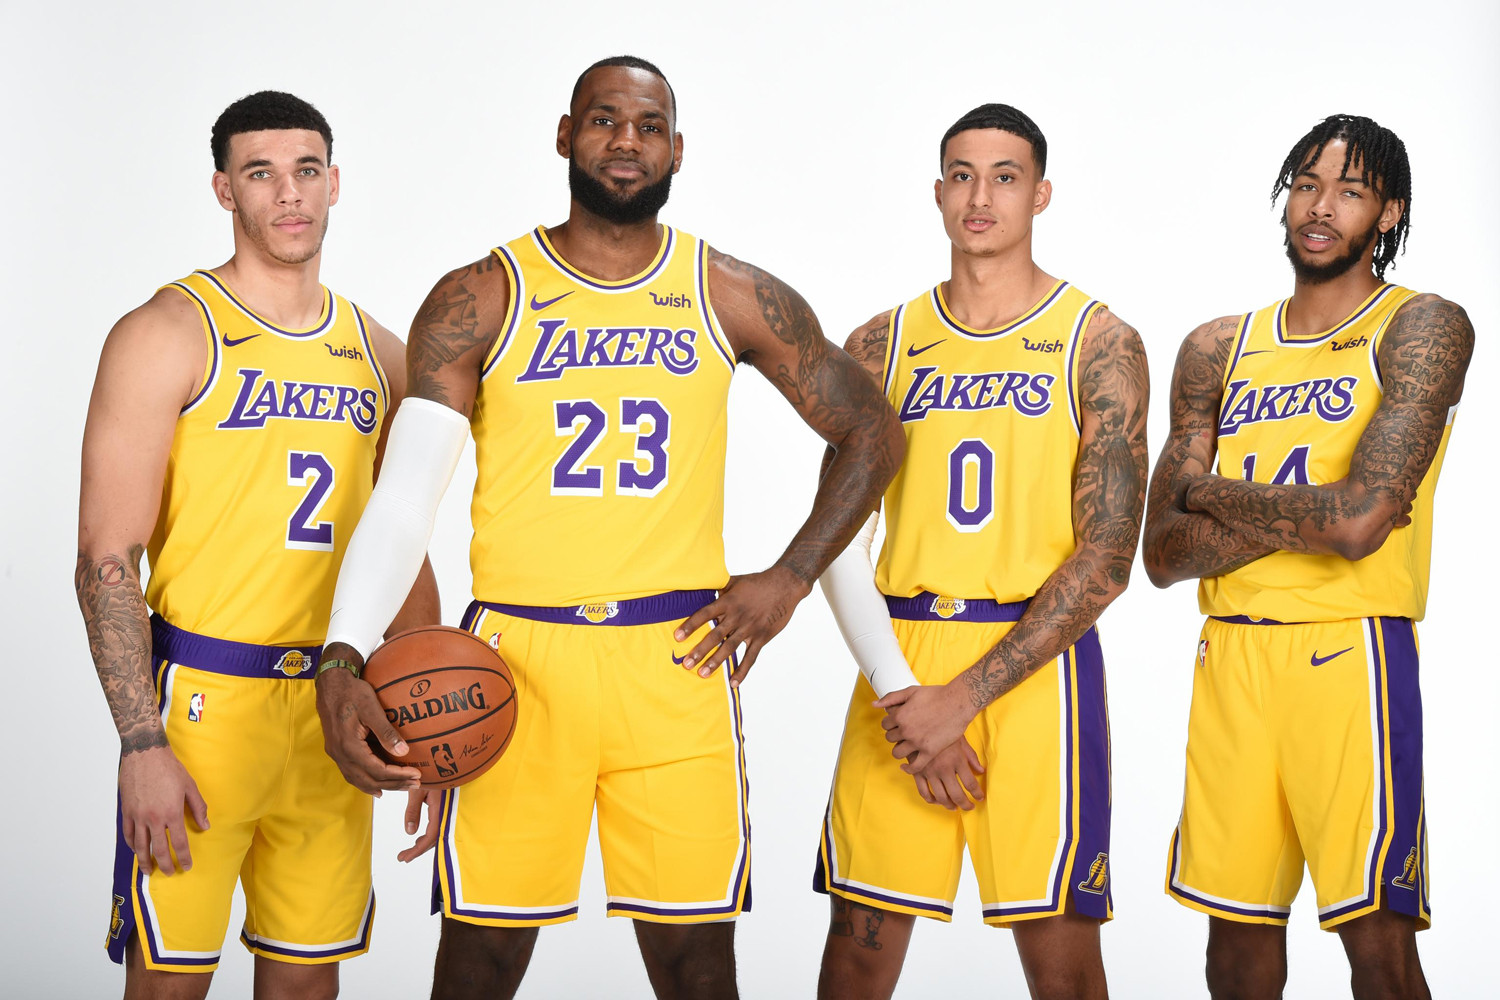 nba 2018 2019 season storylines sports lebron james dwyane wade sports los angeles lakers footwear kanye west nike adidas golden state warriors stephen curry kevin durant klay thomspon